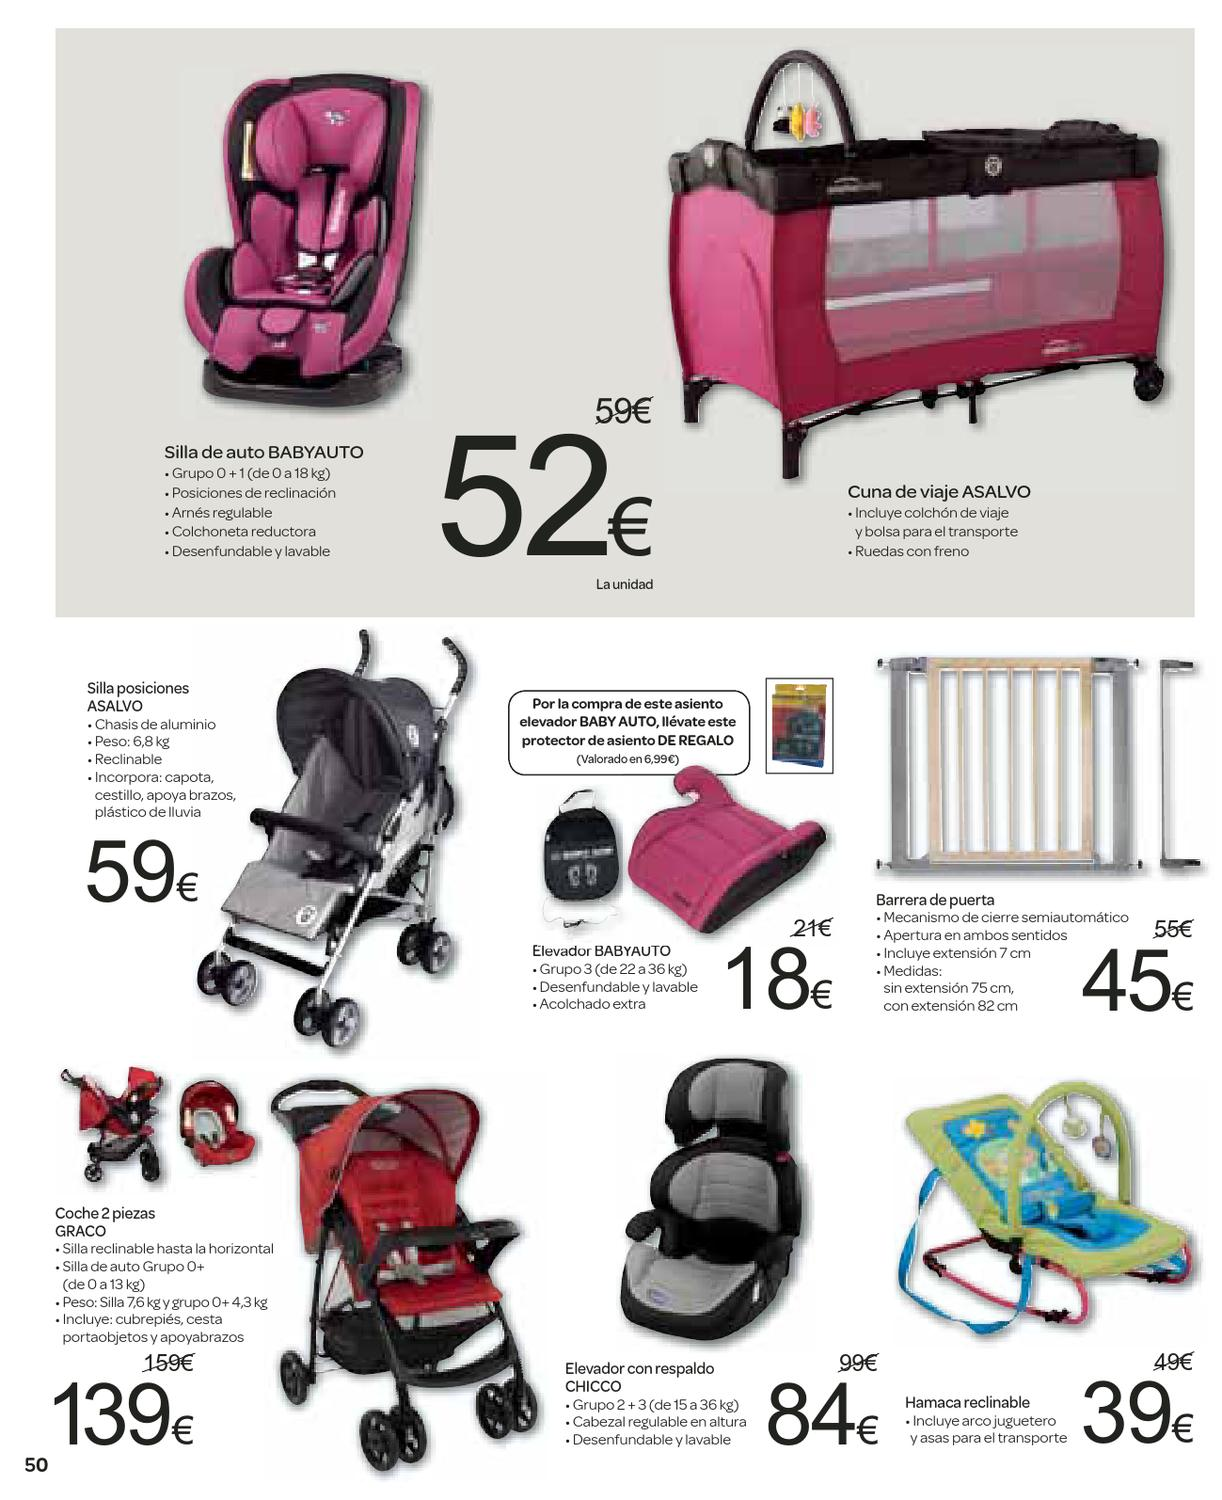 Silla Para Coche Carrefour Catalogo Carrefour Mayo 2013 By Carrefour Online Issuu